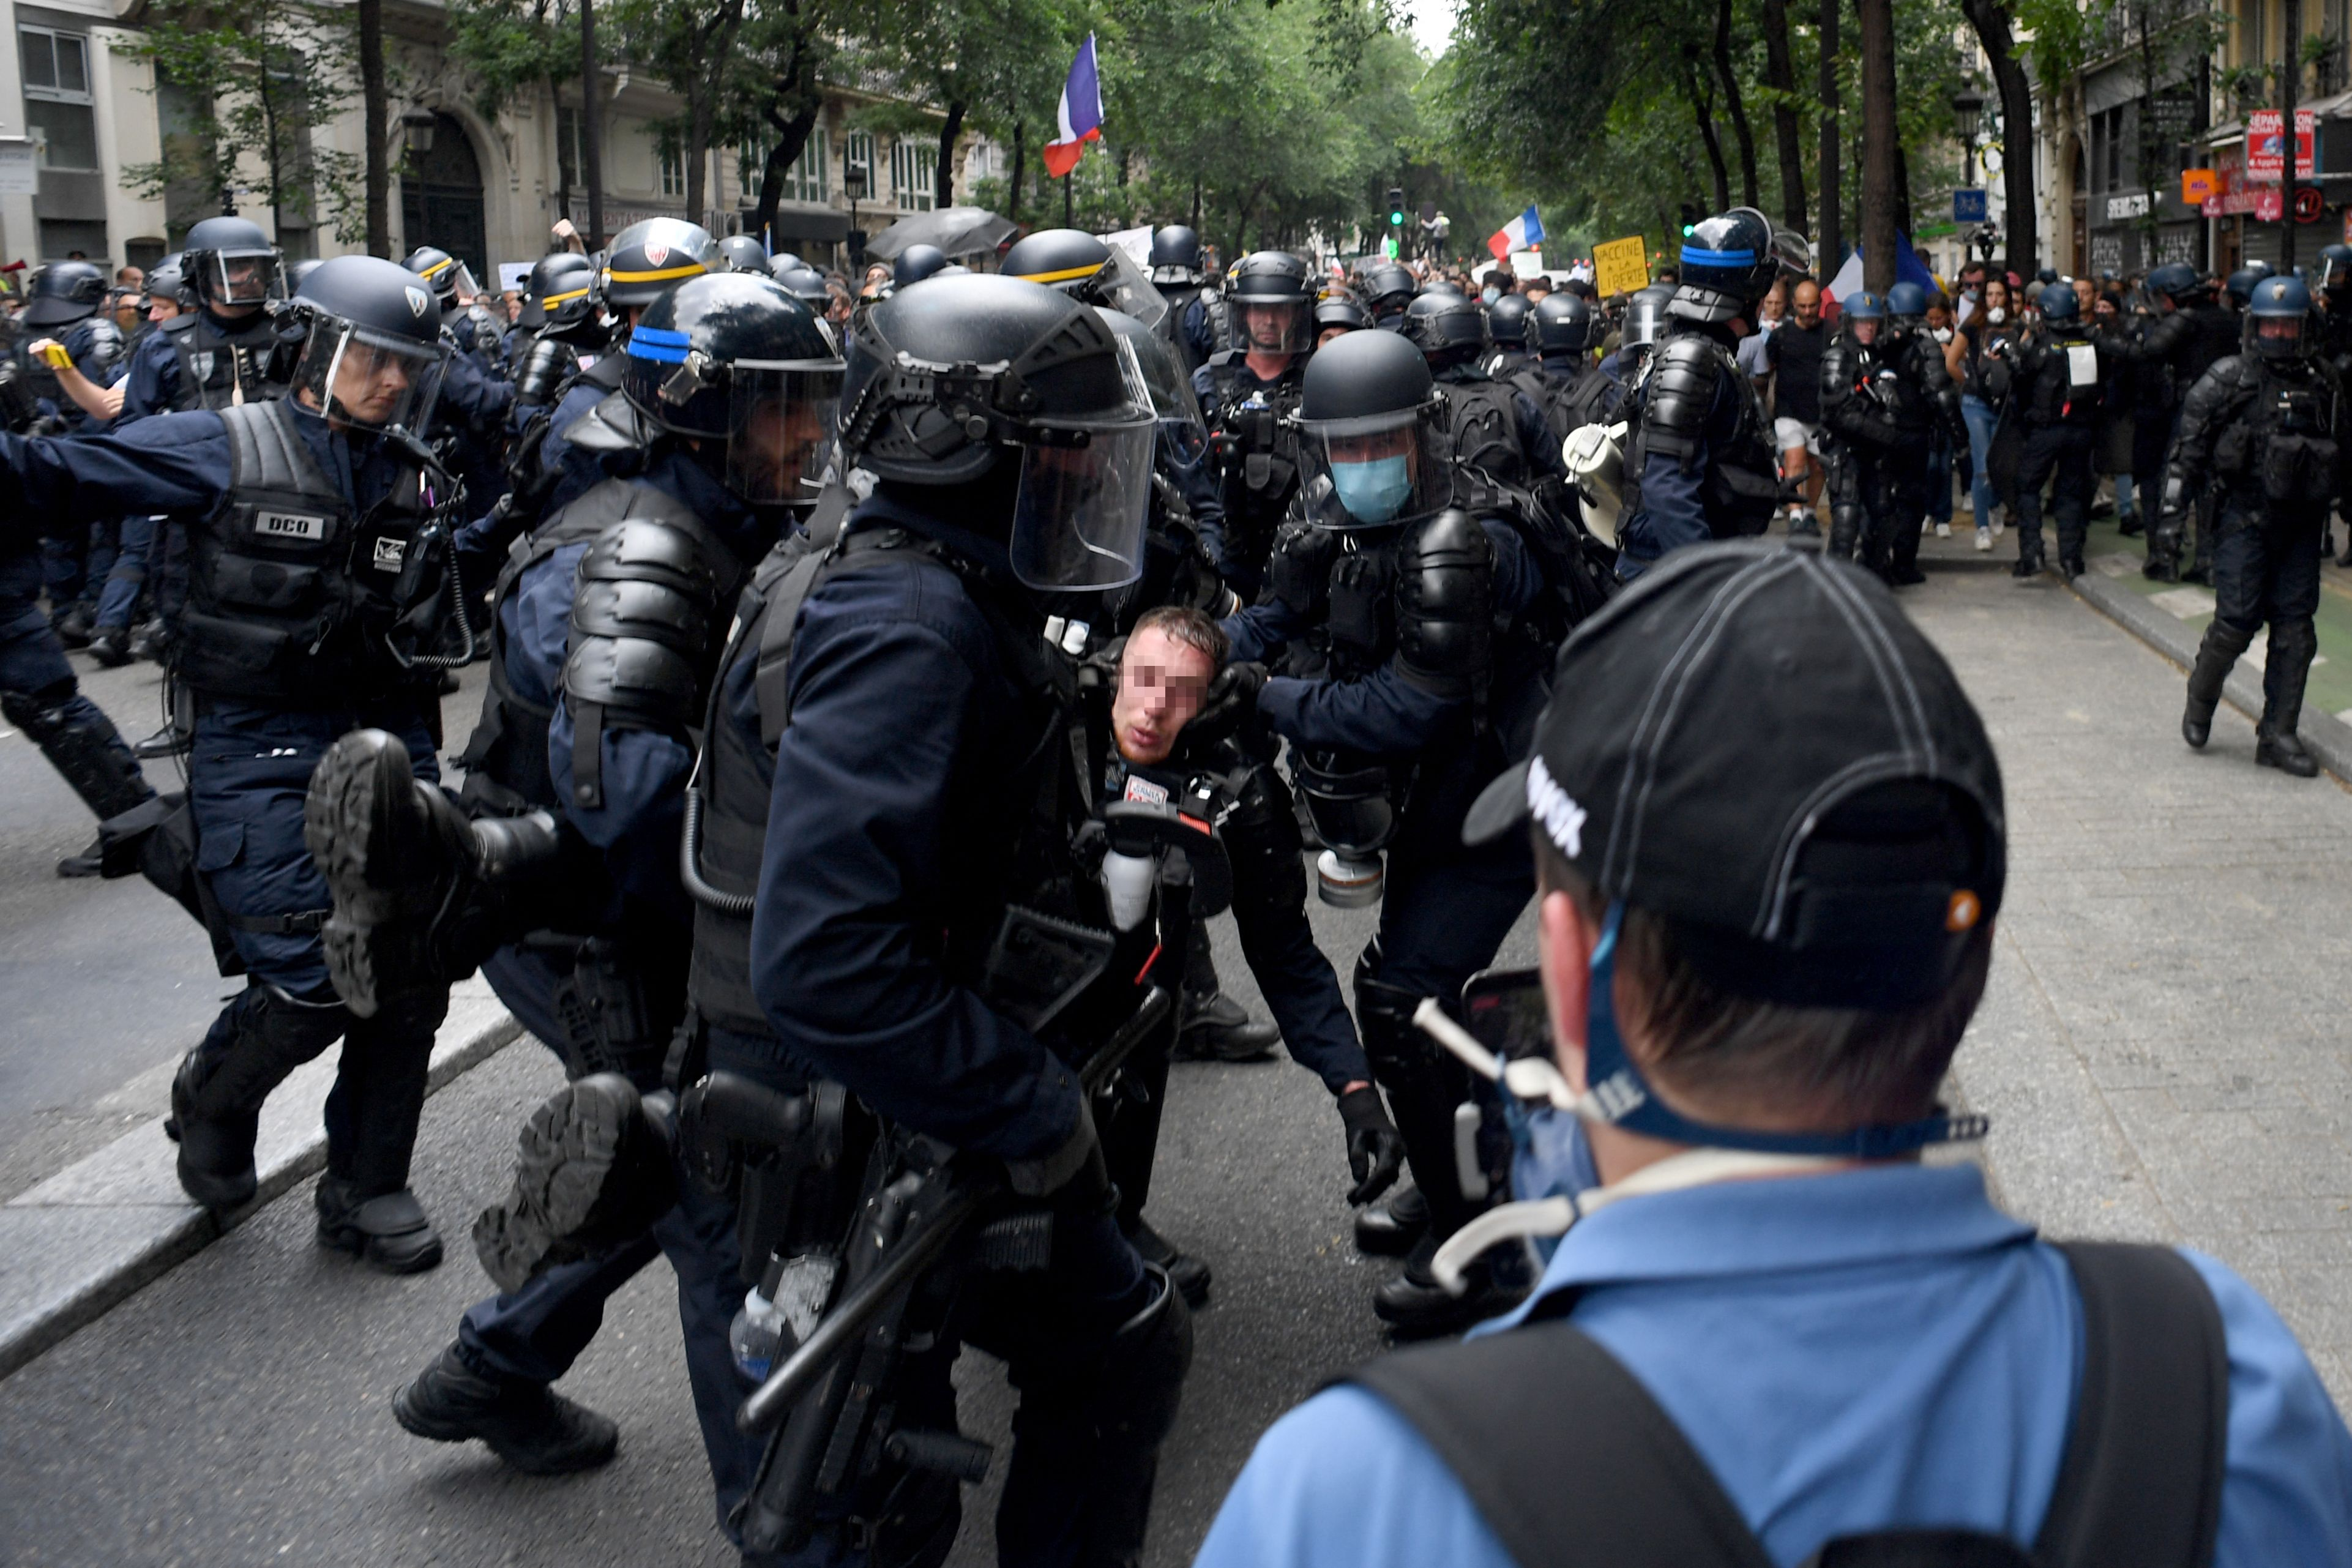 French Police Deploy Tear Gas to Disperse Crowd Protesting COVID Passes